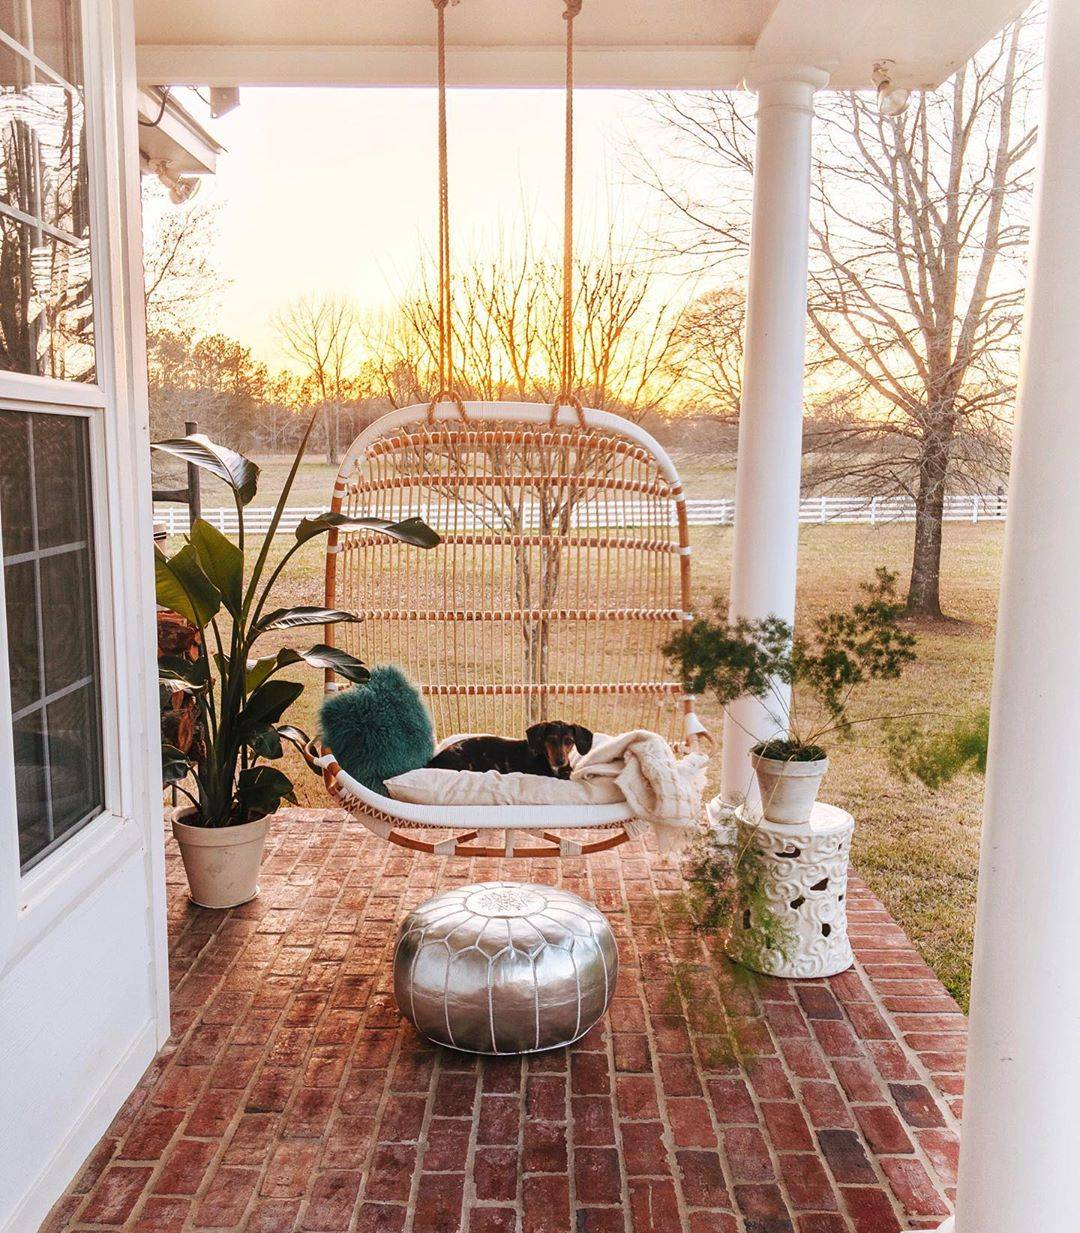 Boho Chic Modern Patio Porch Rattan Oval Swing